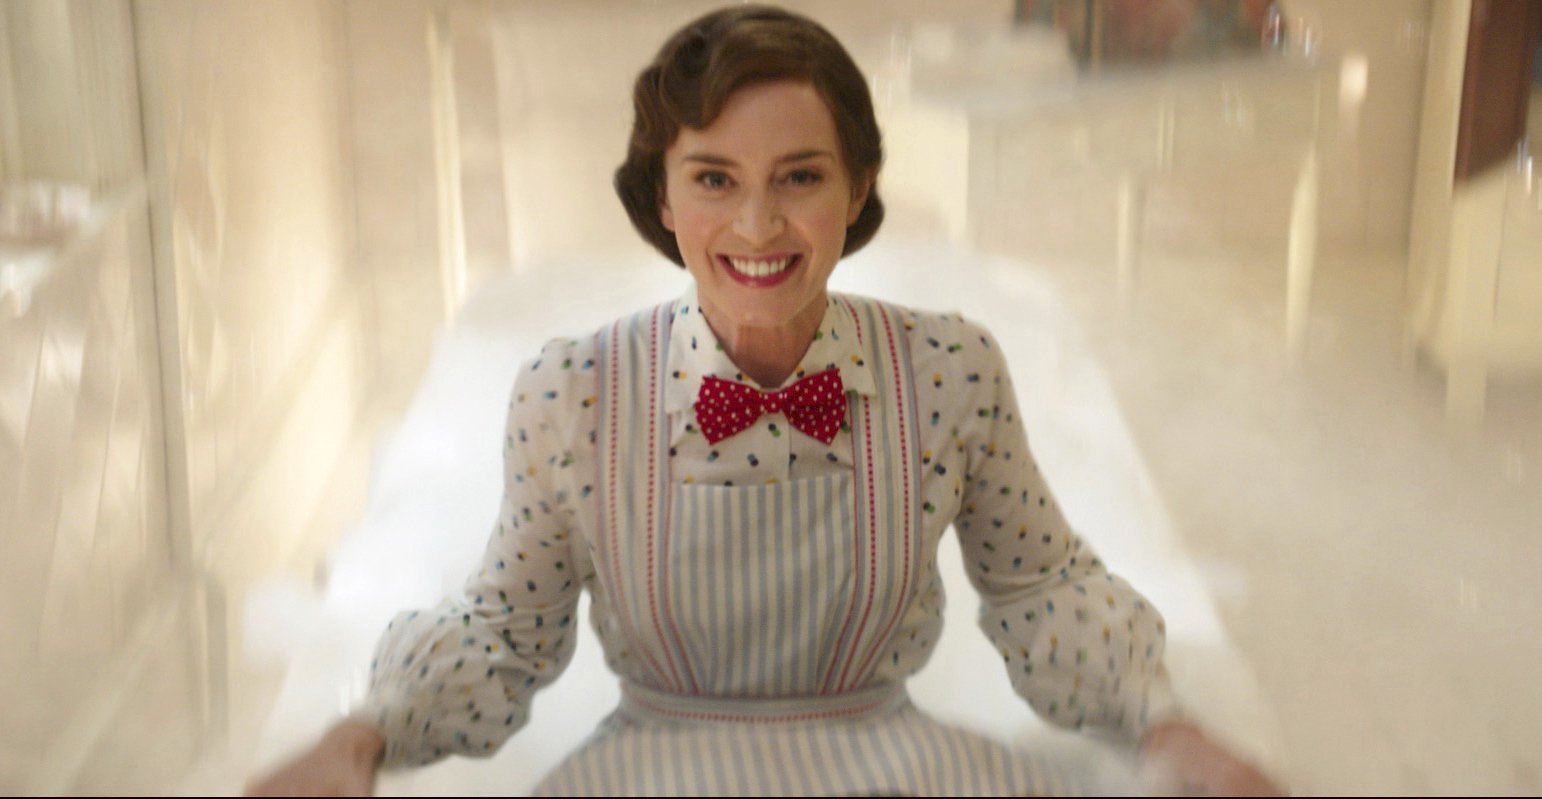 When is Mary Poppins Returns out in the UK? Release date, cast, trailer and soundtrack